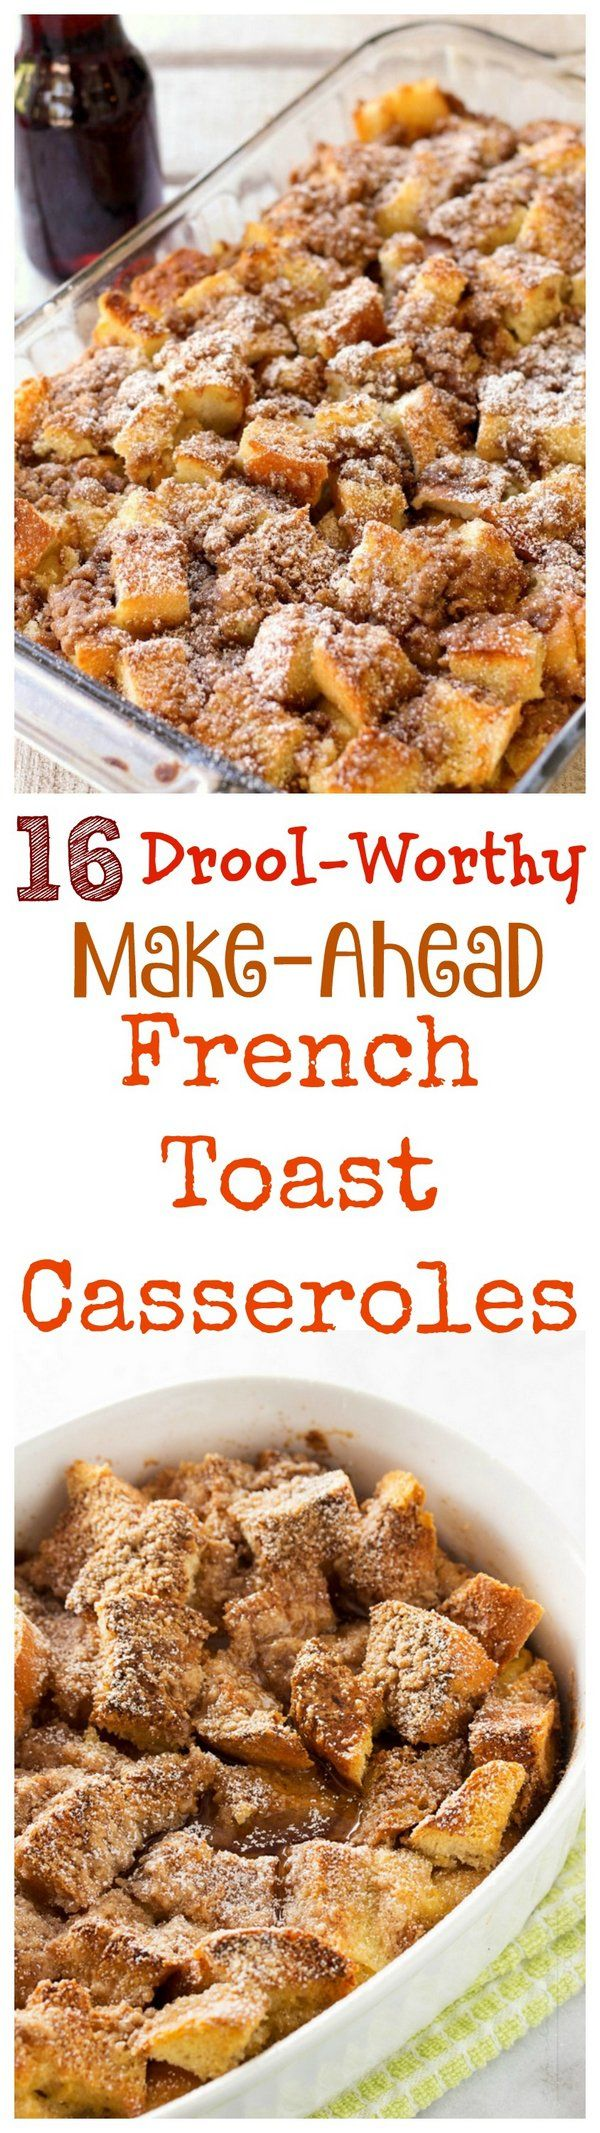 16-drool-worthy-make-ahead-french-toast-casseroles-you-need-to-make